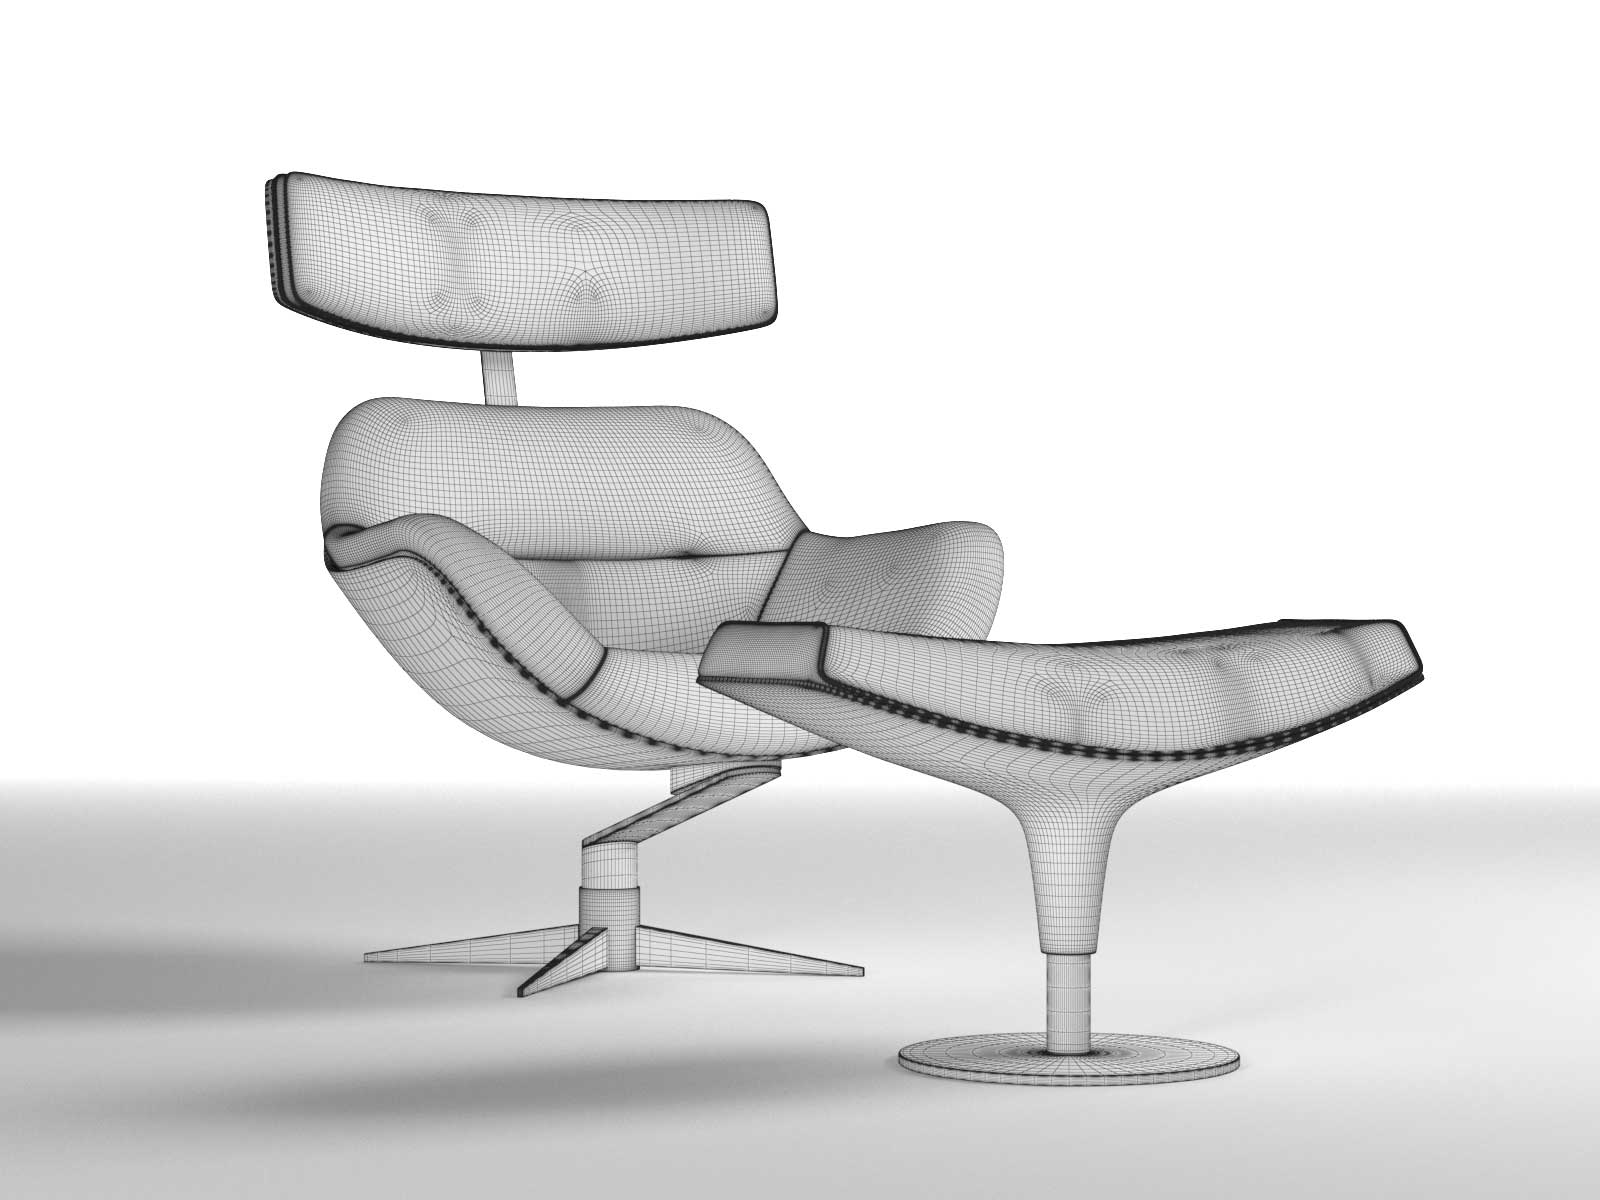 armchair drawing. 277 auckland armchair and footrest drawing